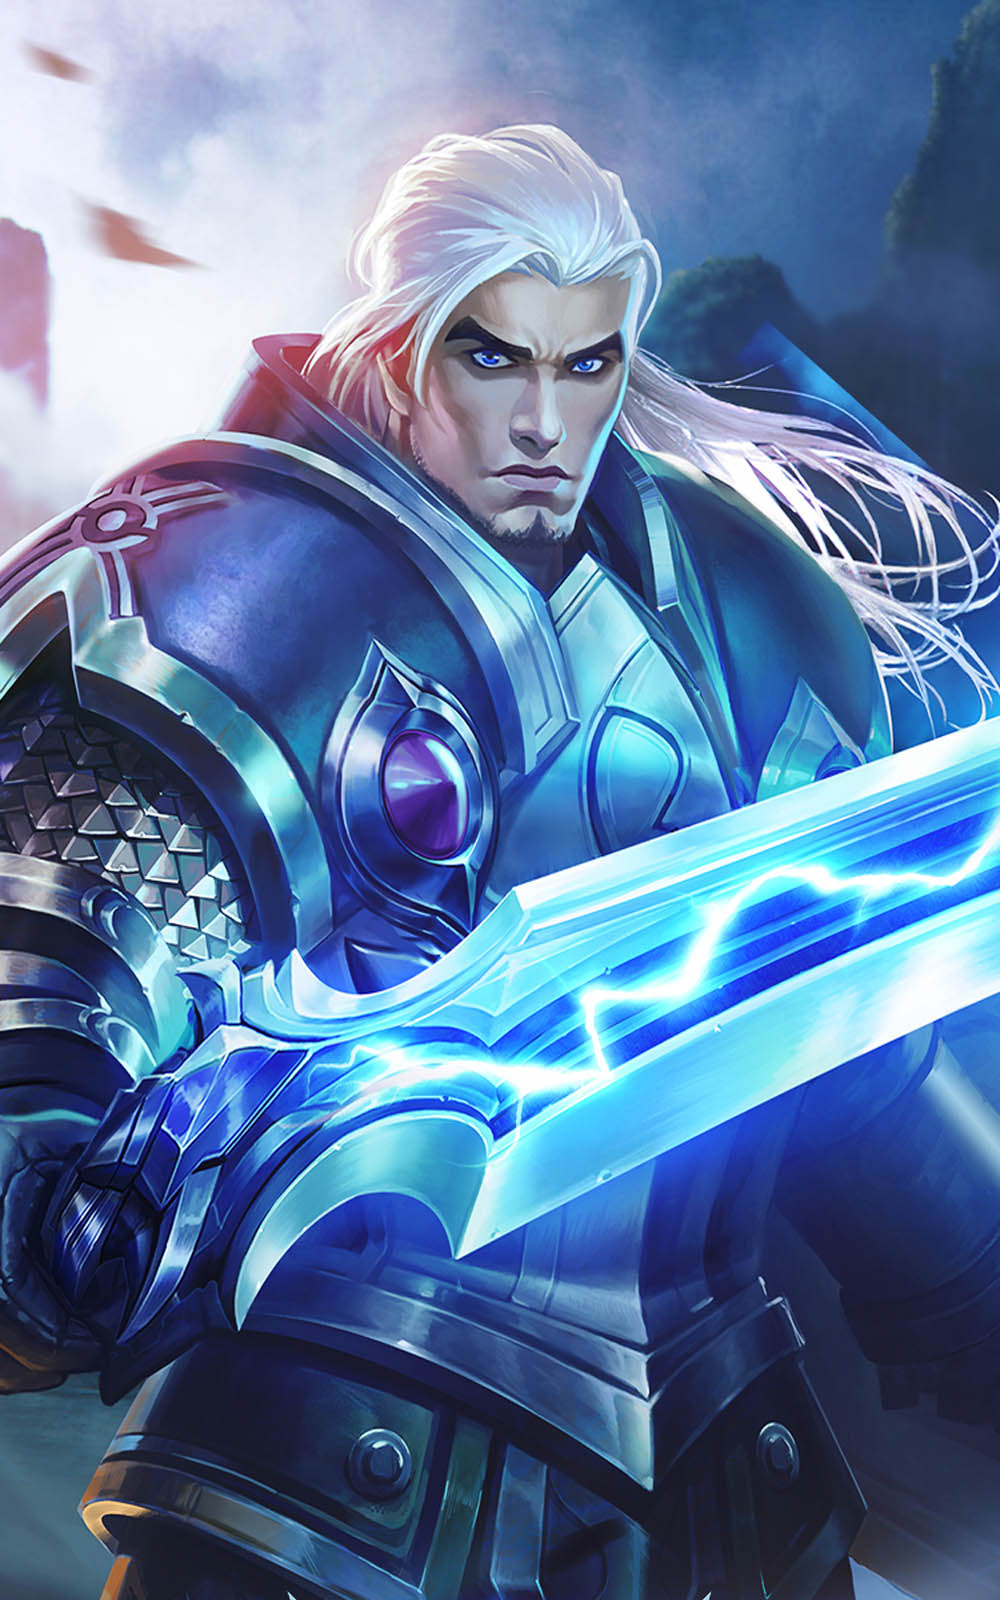 Download Tigreal Mobile Legends Hero Free Pure 4K Ultra HD Mobile Wallpaper